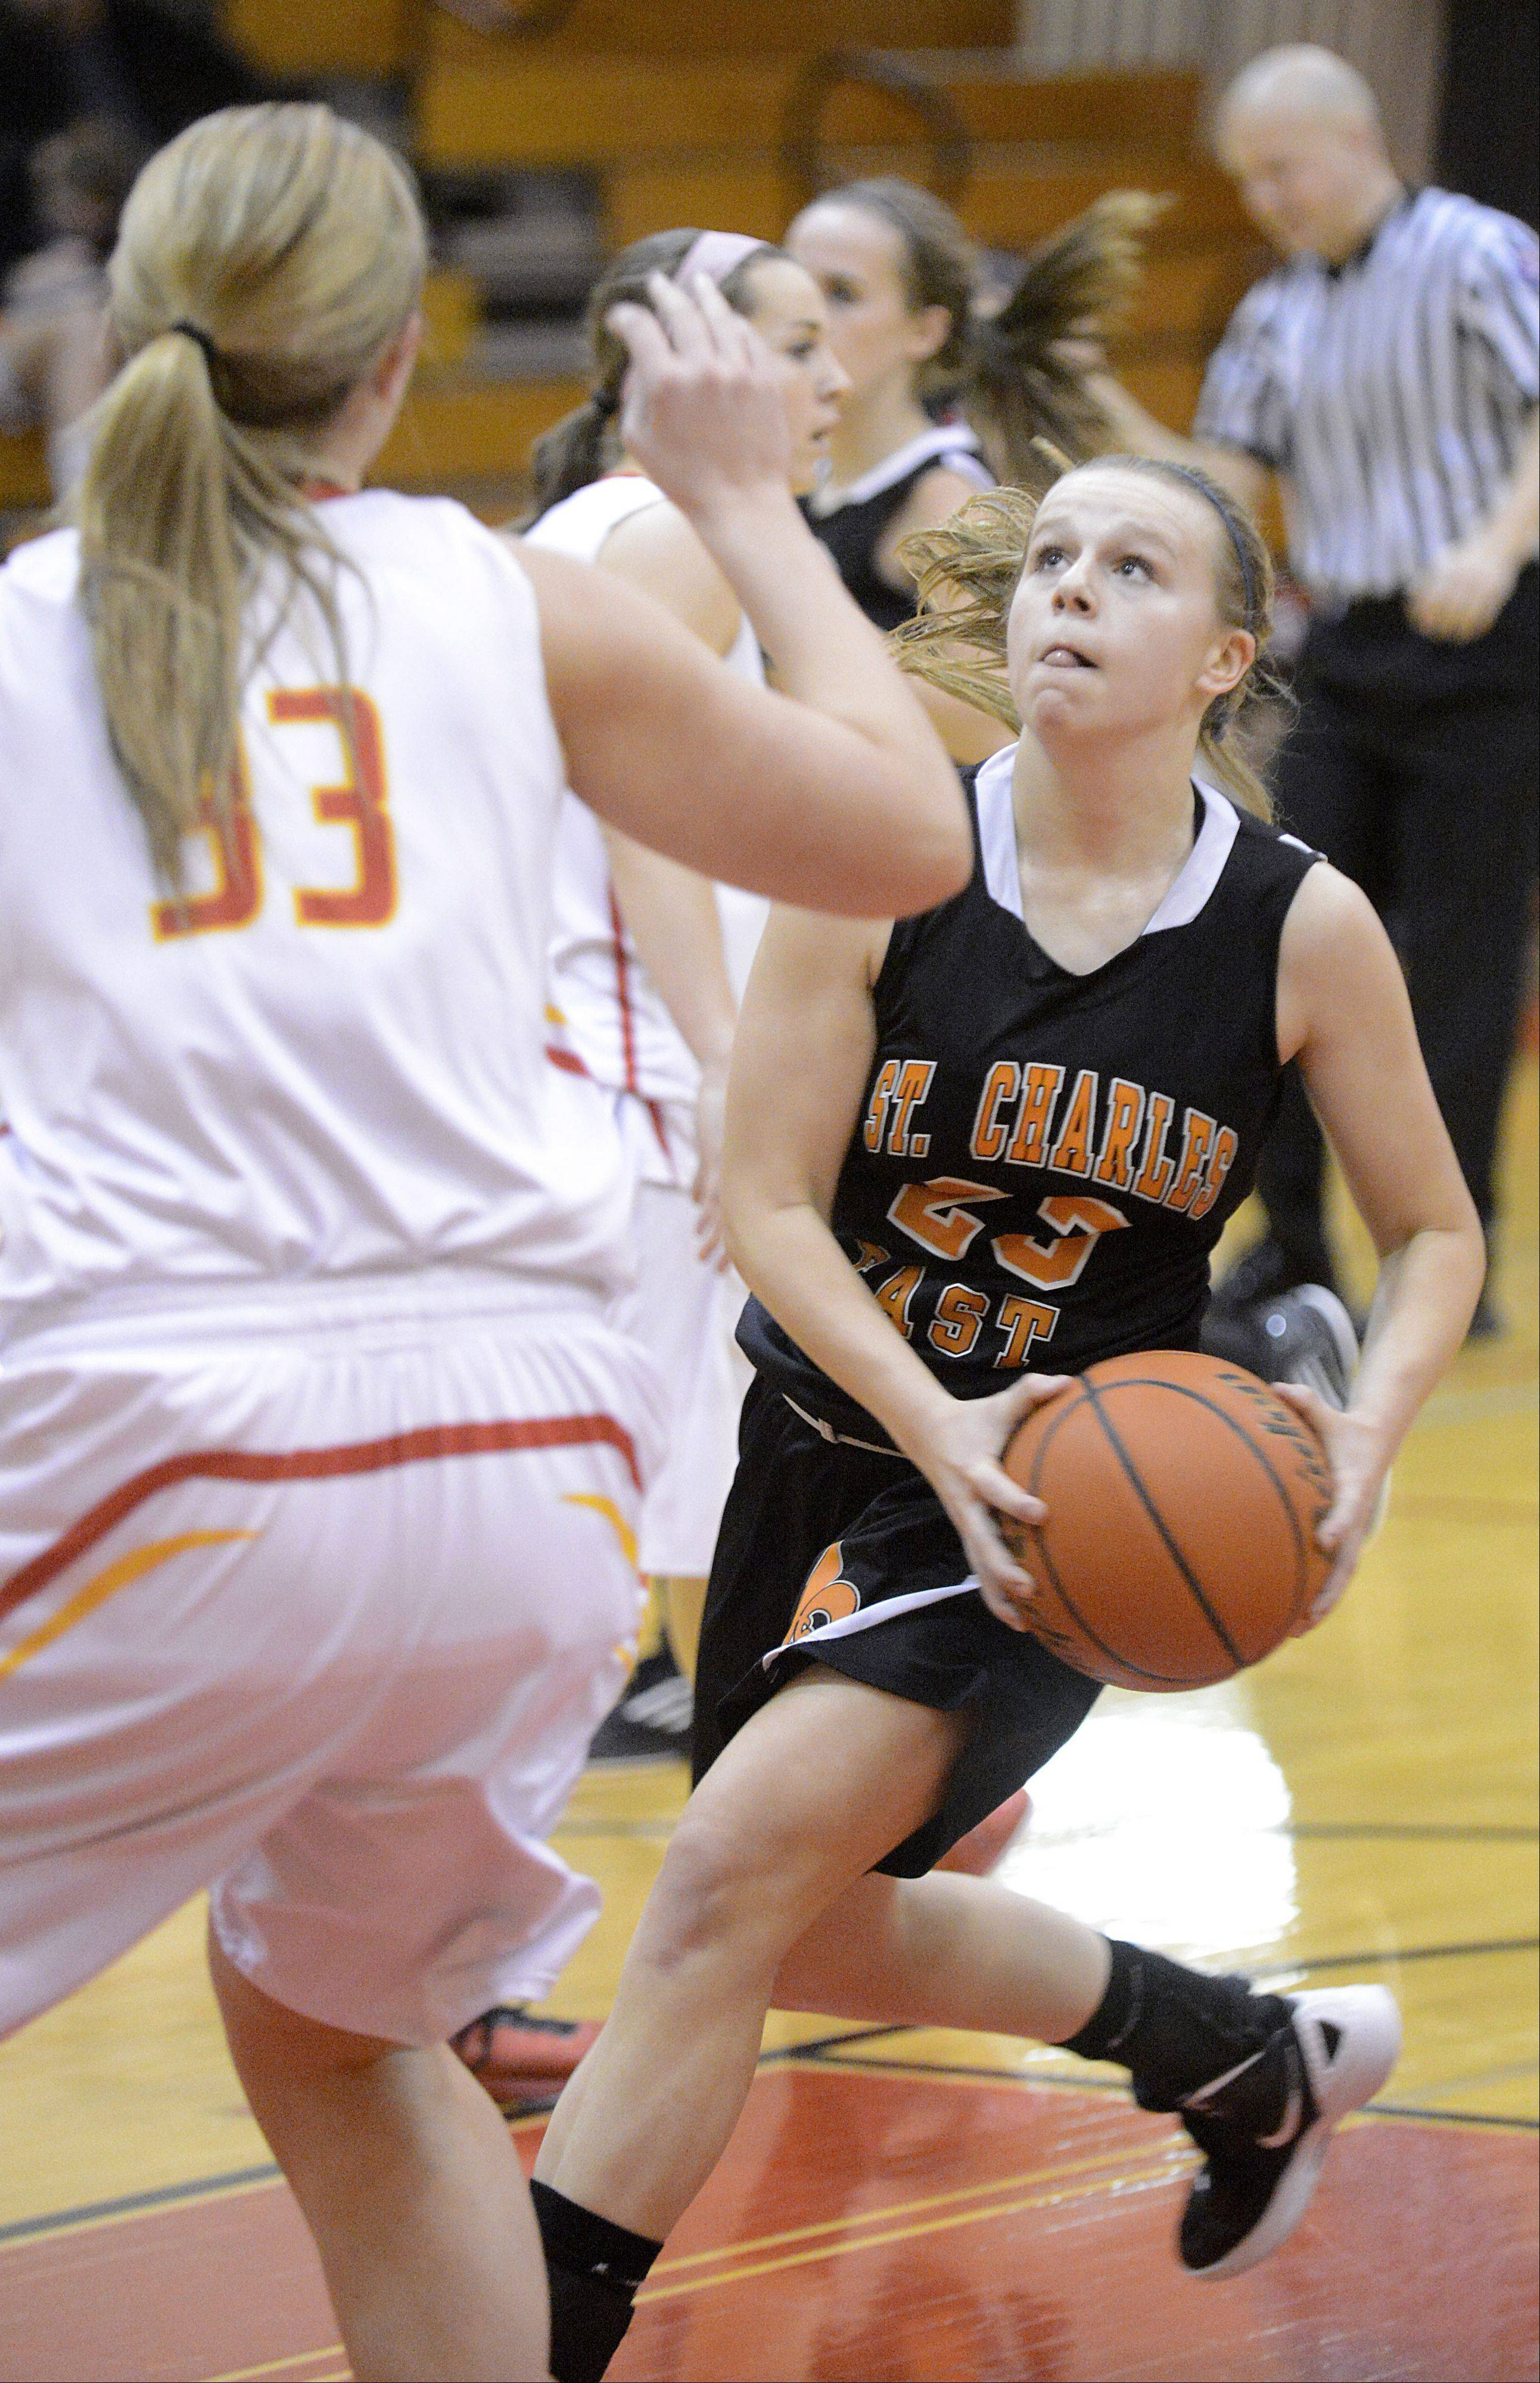 Batavia's Erin Bayram attempts to block a shot by St. Charles East's Amanda Hilton in the first quarter on Tuesday, January 8.